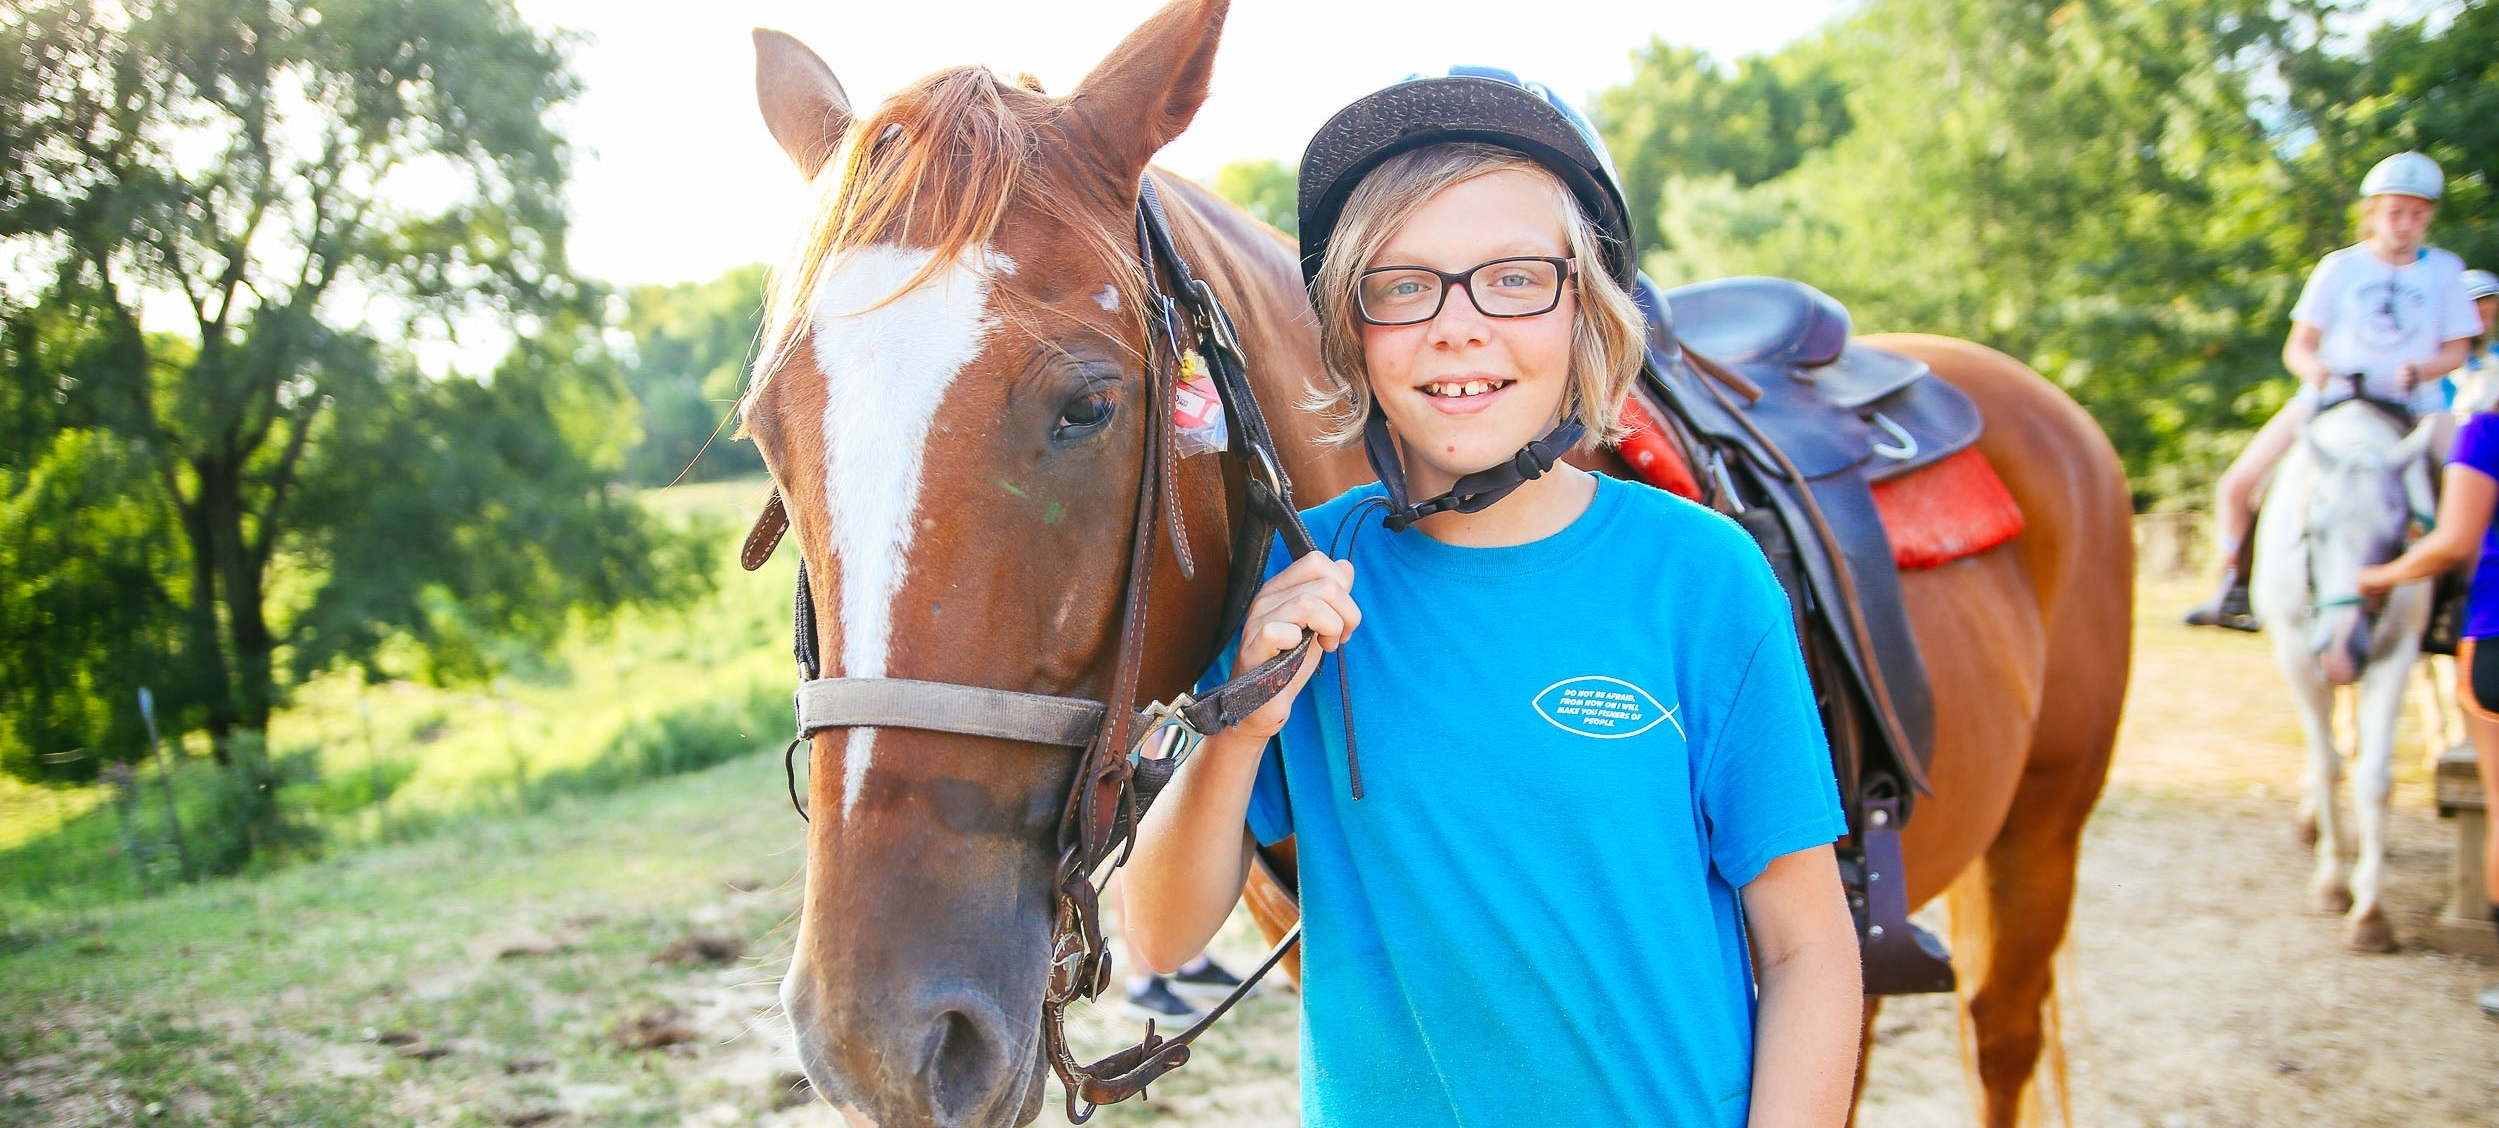 DID YOU KNOW?? Heartland has summer camps, too!